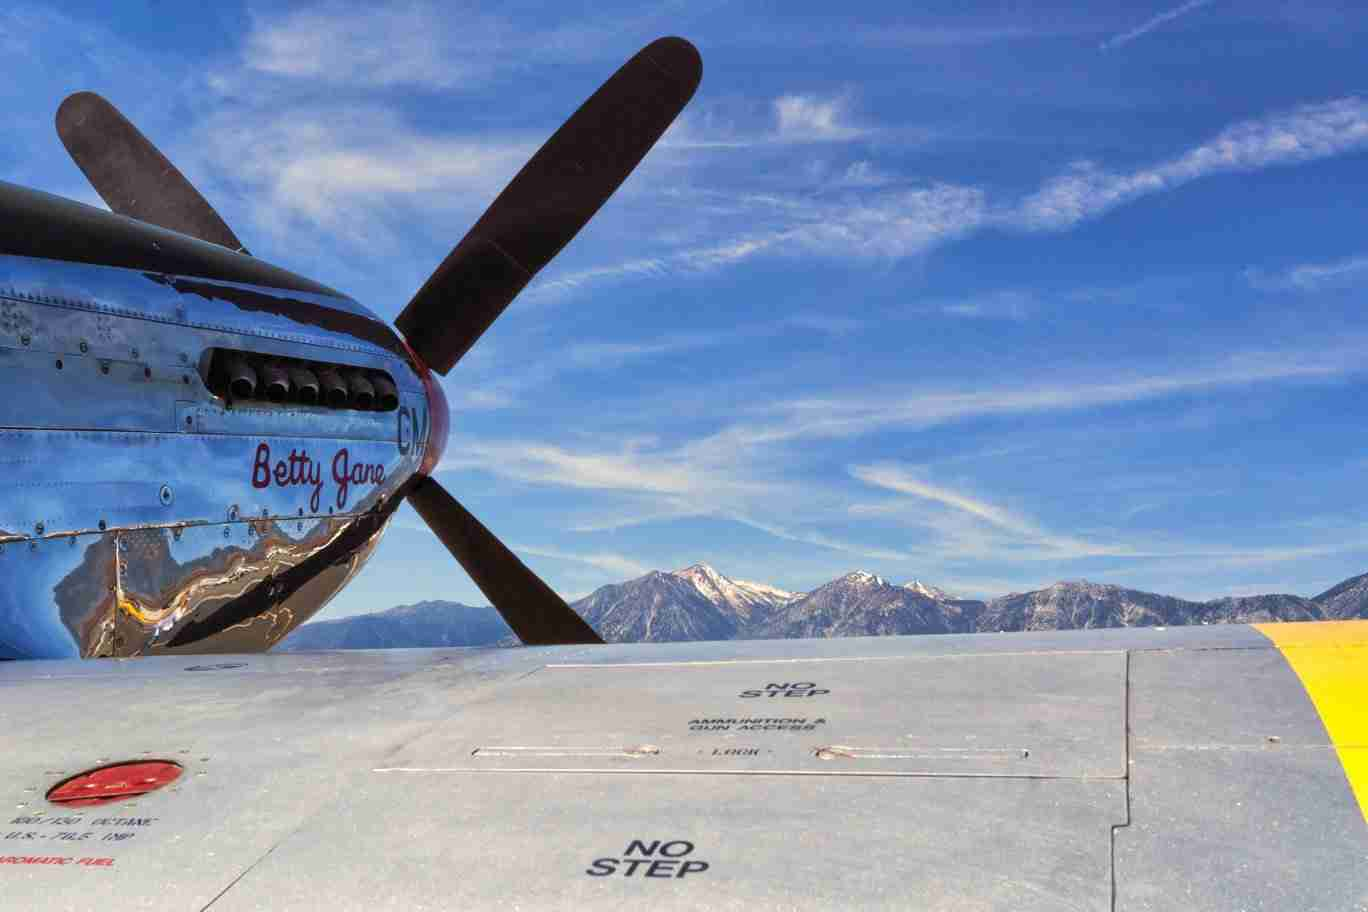 Print of a P-51 Mustang with the Sierra Nevada Mountains